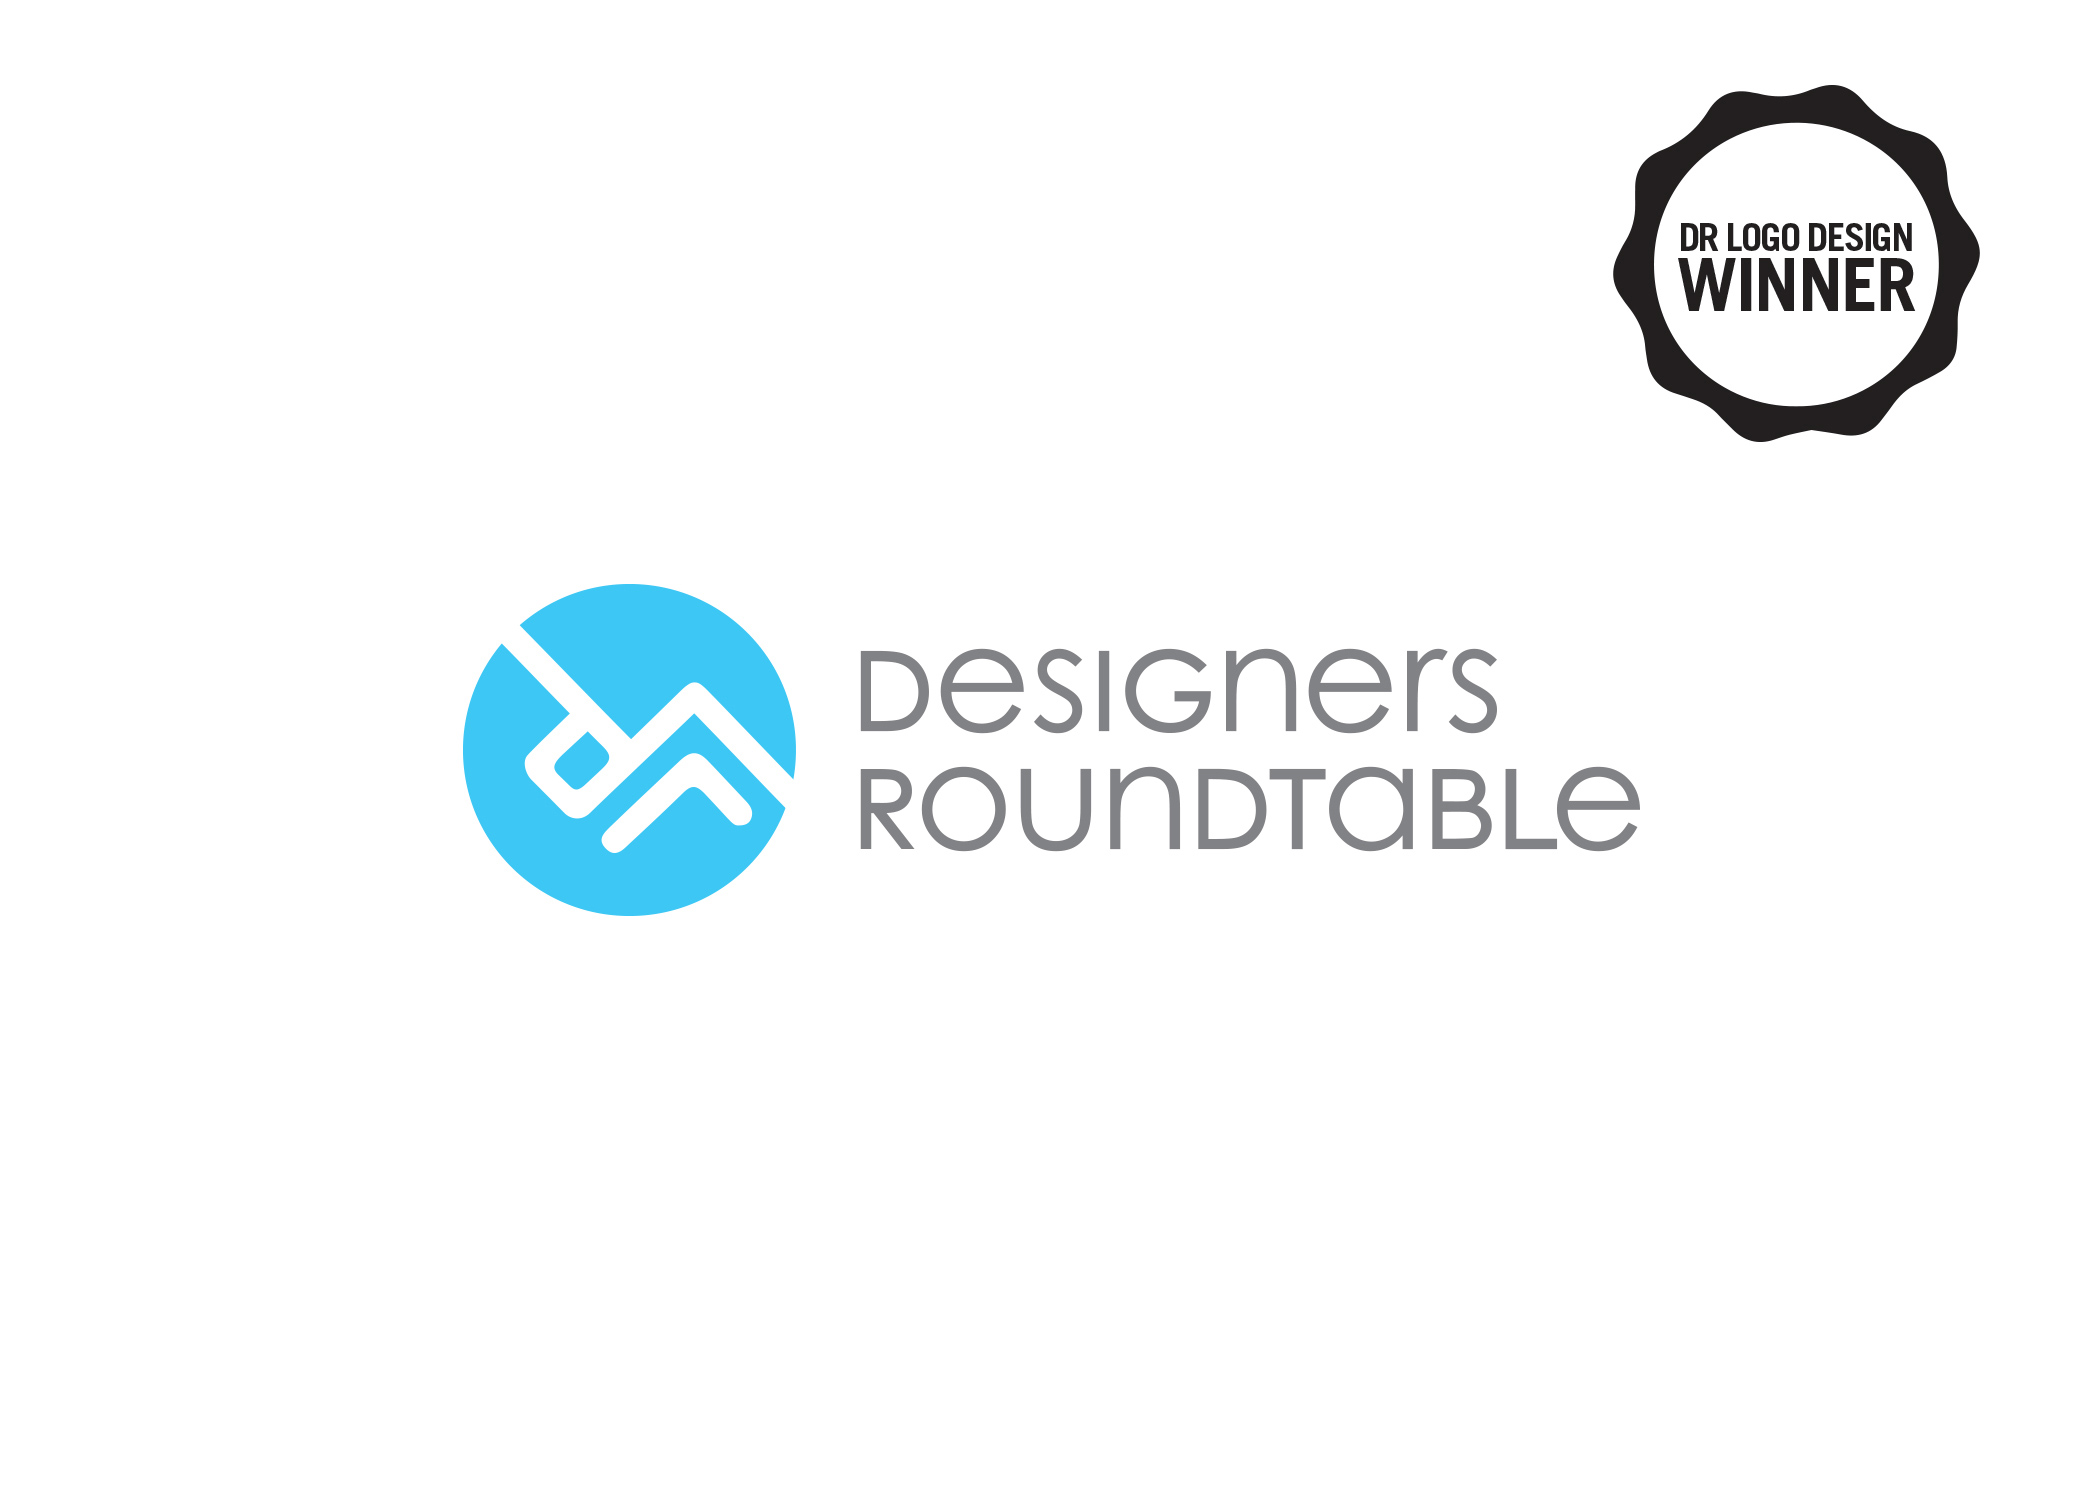 """Designers Roundtable award winning graphic design logo using the initials """"DR"""" on an angle that looks like a table next to logo typography."""